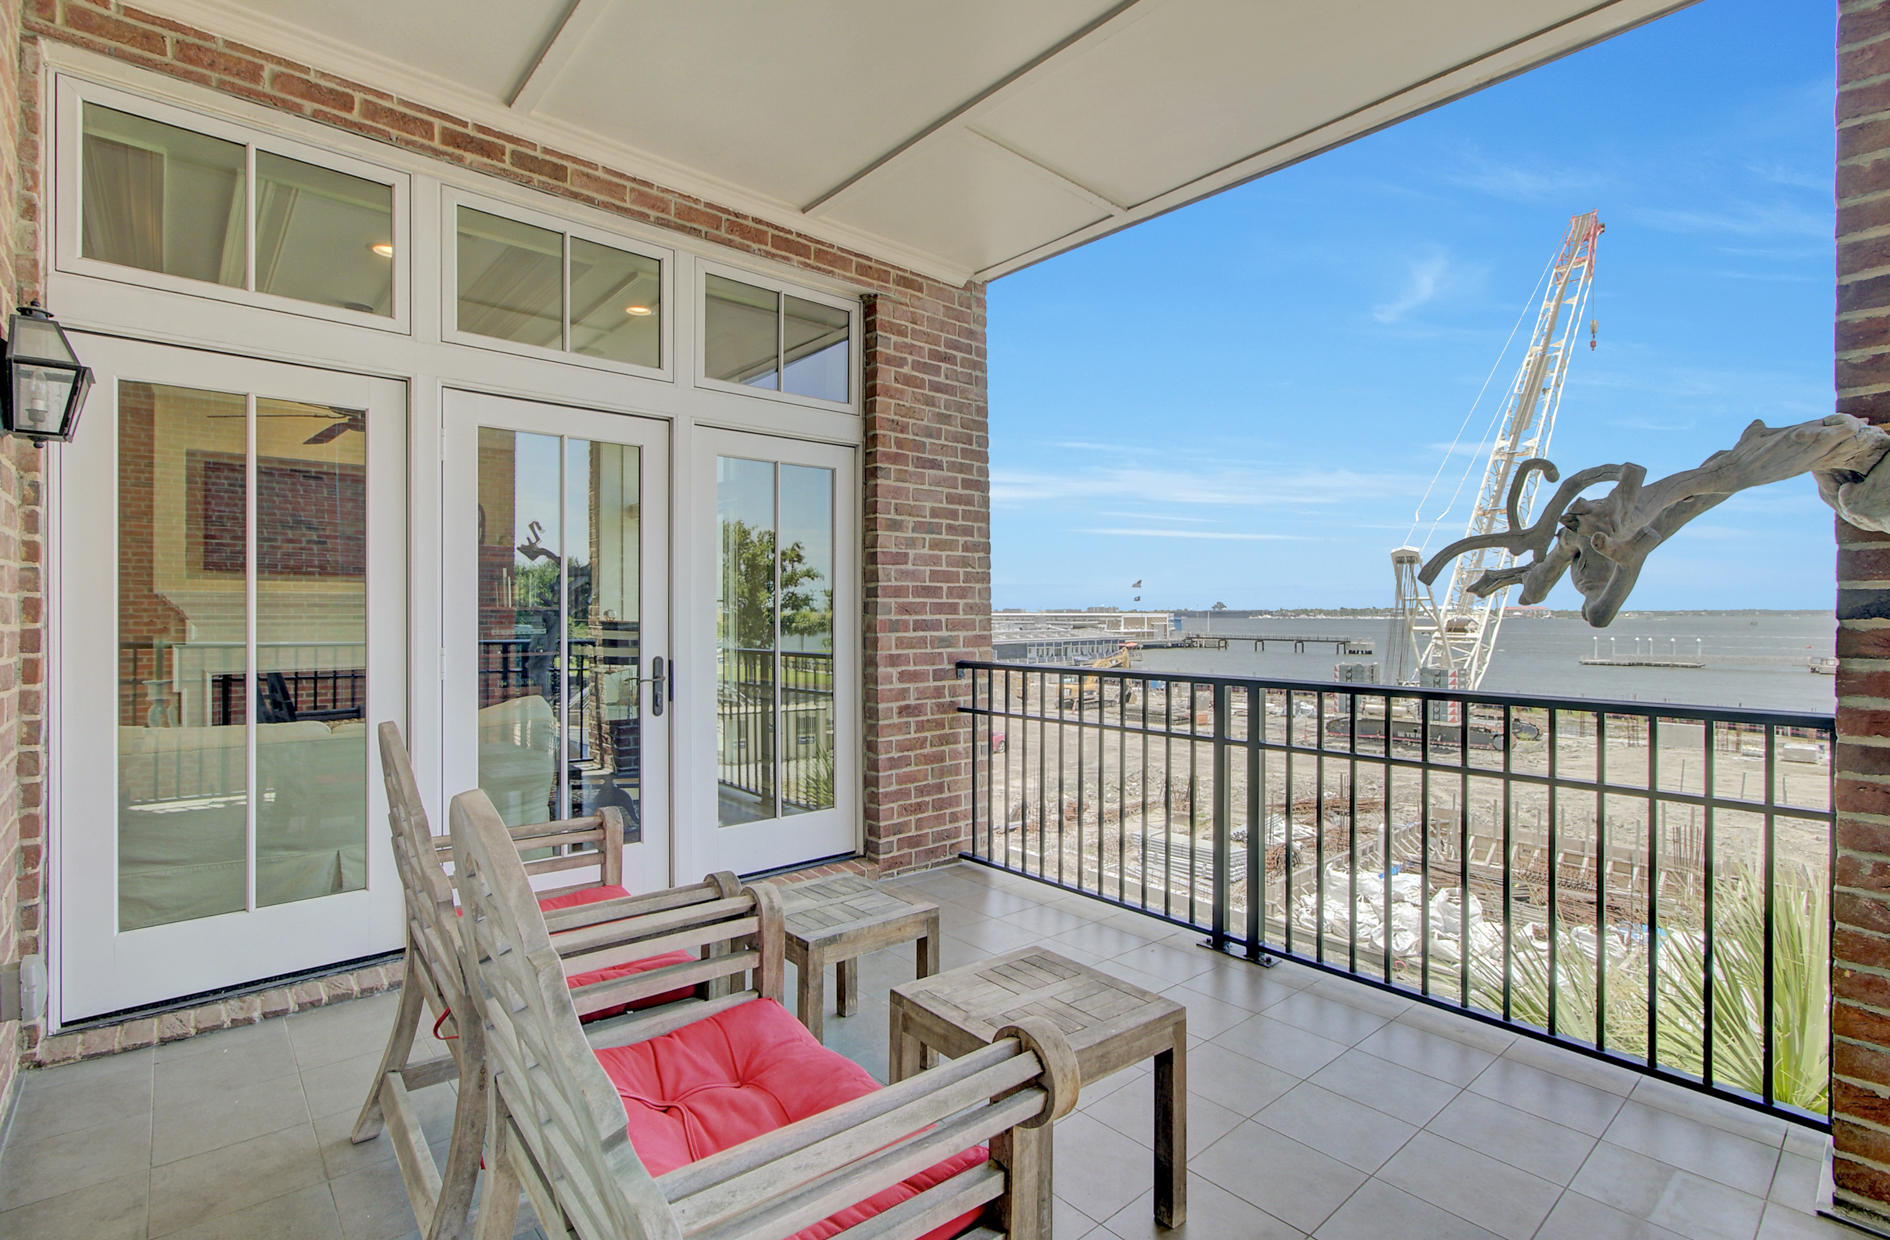 French Quarter Homes For Sale - 175 Concord, Charleston, SC - 17